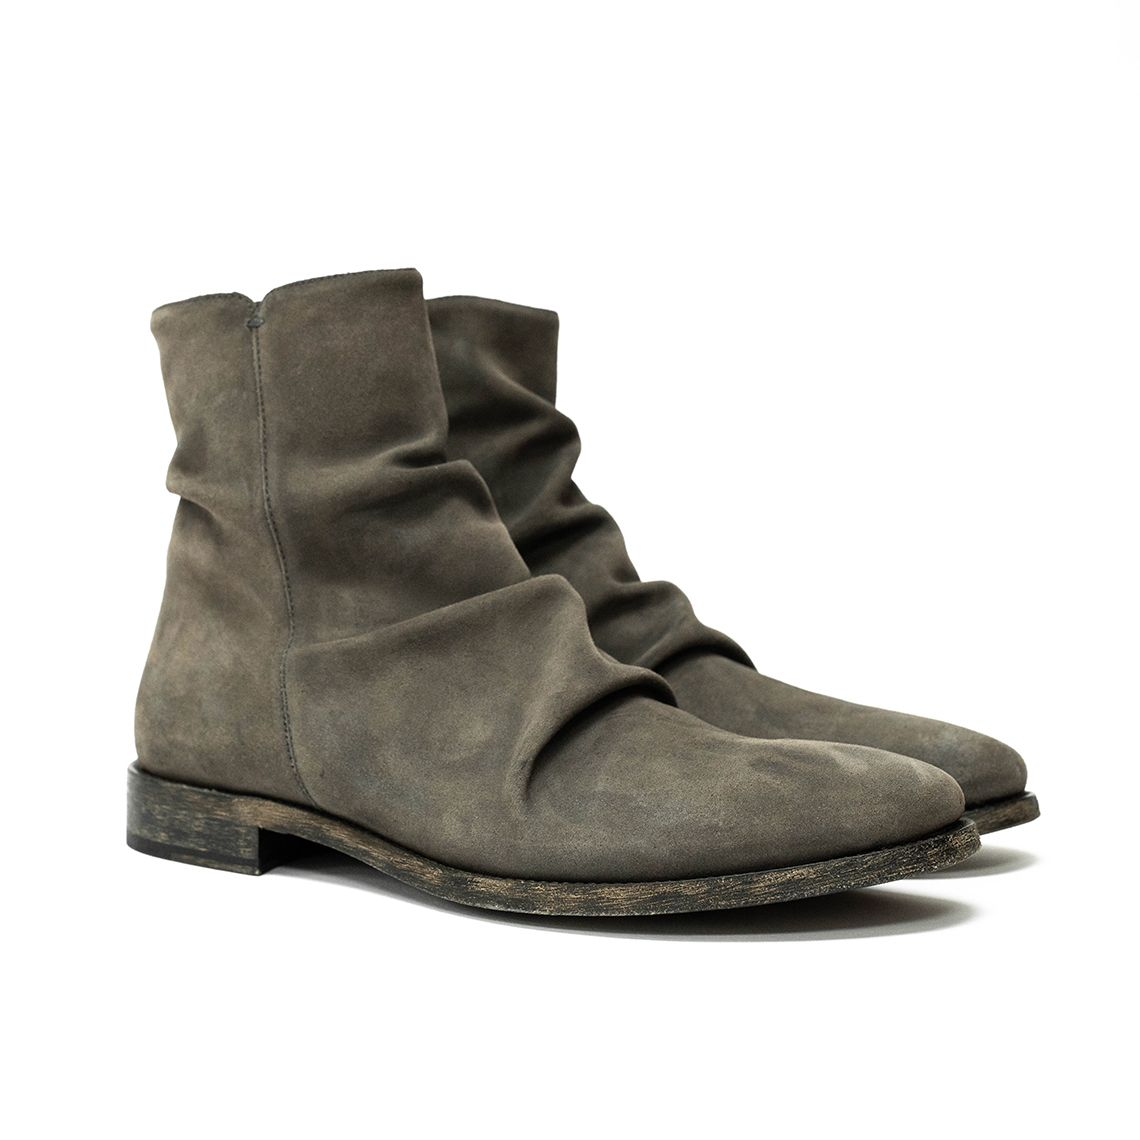 THE WOLF GREY VIENNA BOOTS